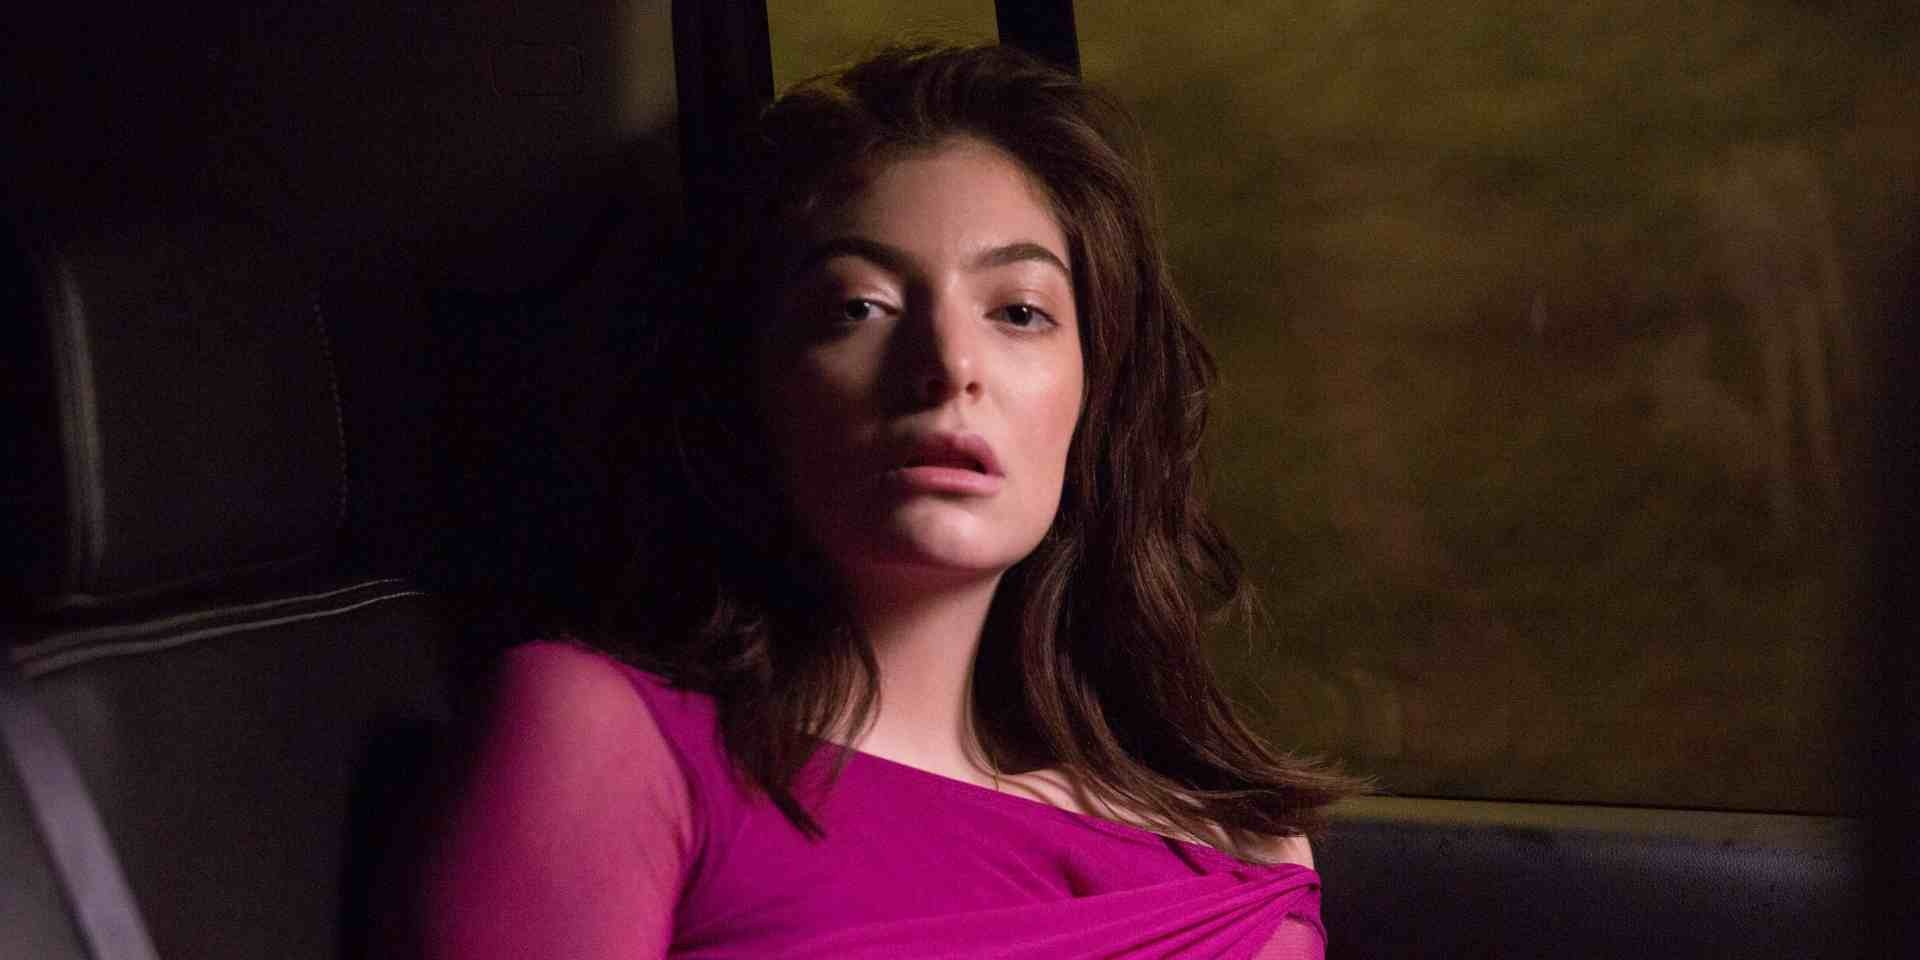 Lorde gives confirmation that her new album is on the way